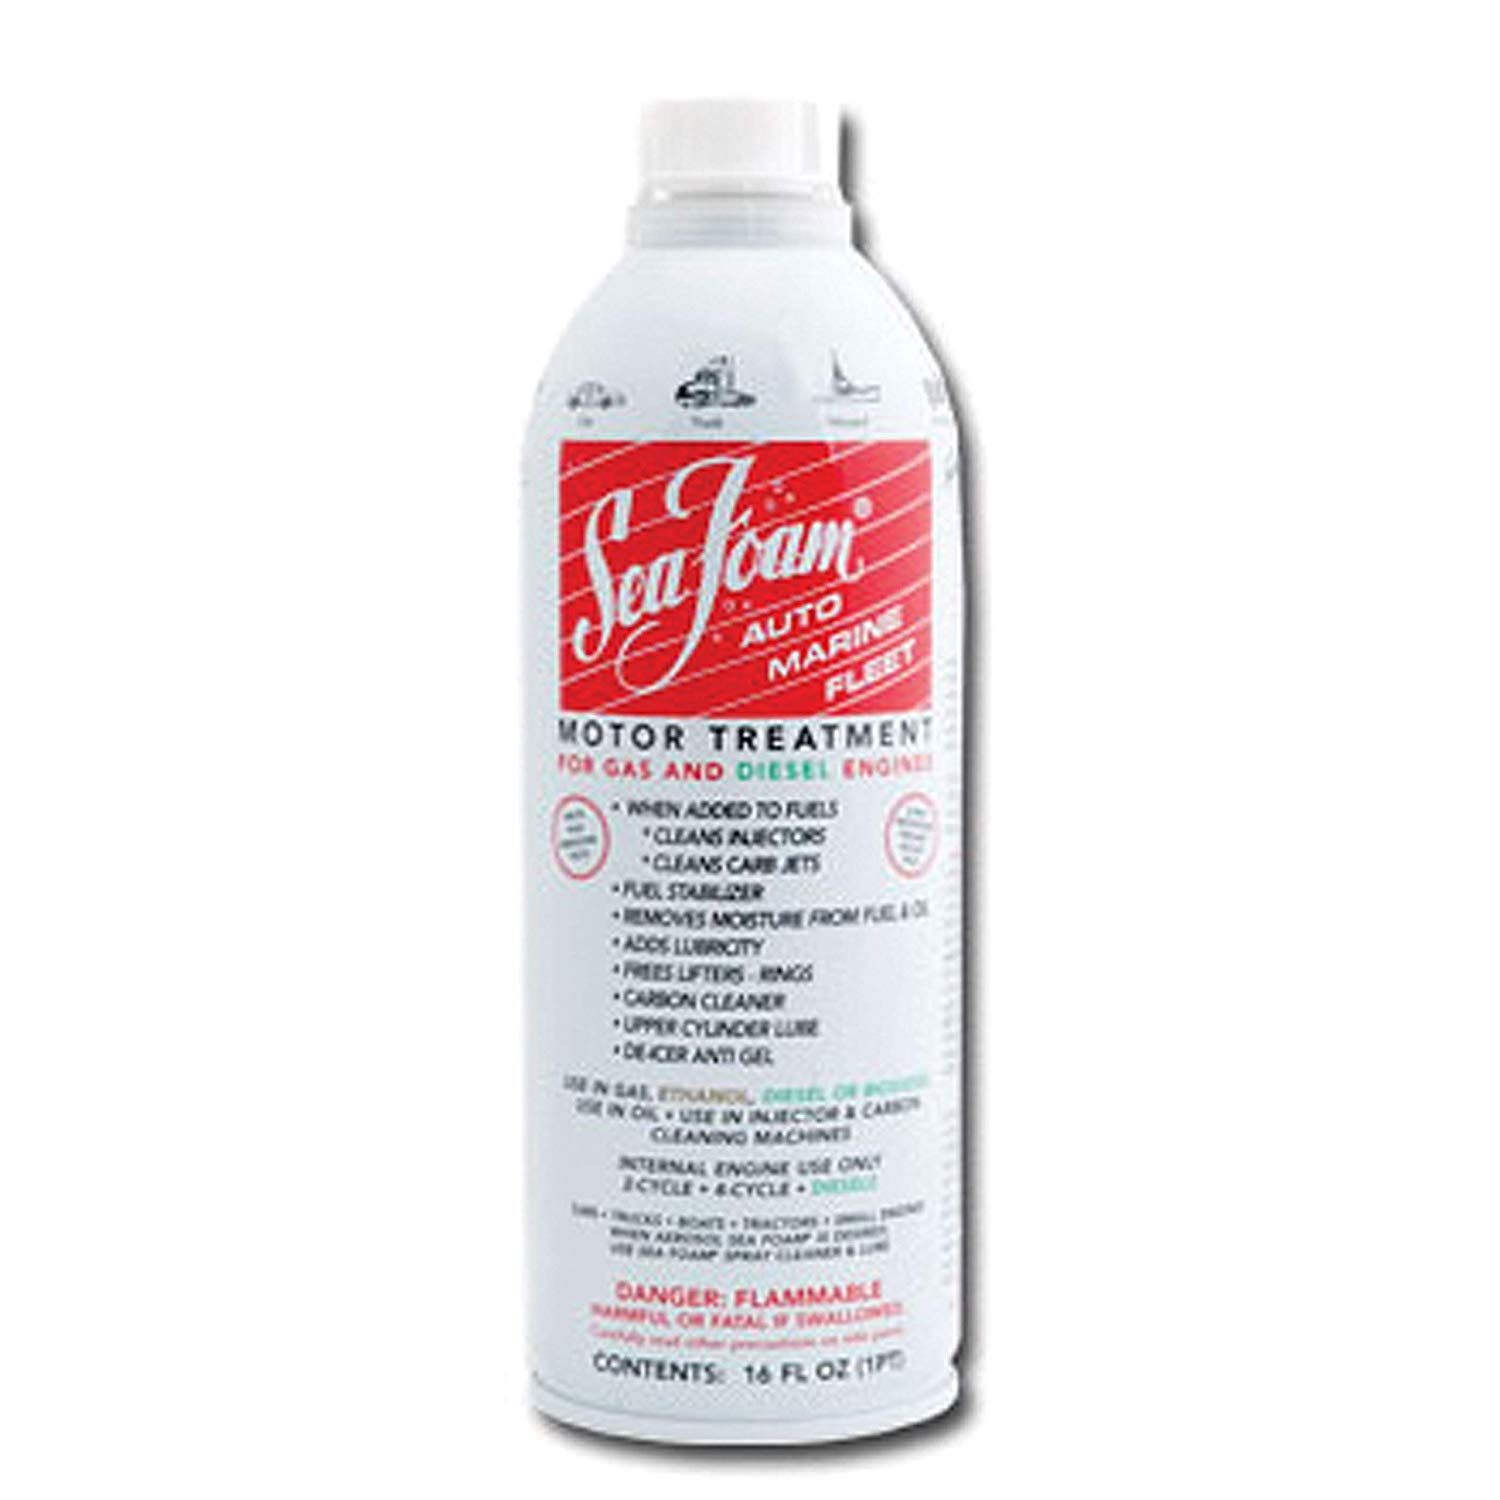 3 Best Fuel Stabilizers 2020 The Drive In 2020 Sea Foam Fuel Additives Best Oils